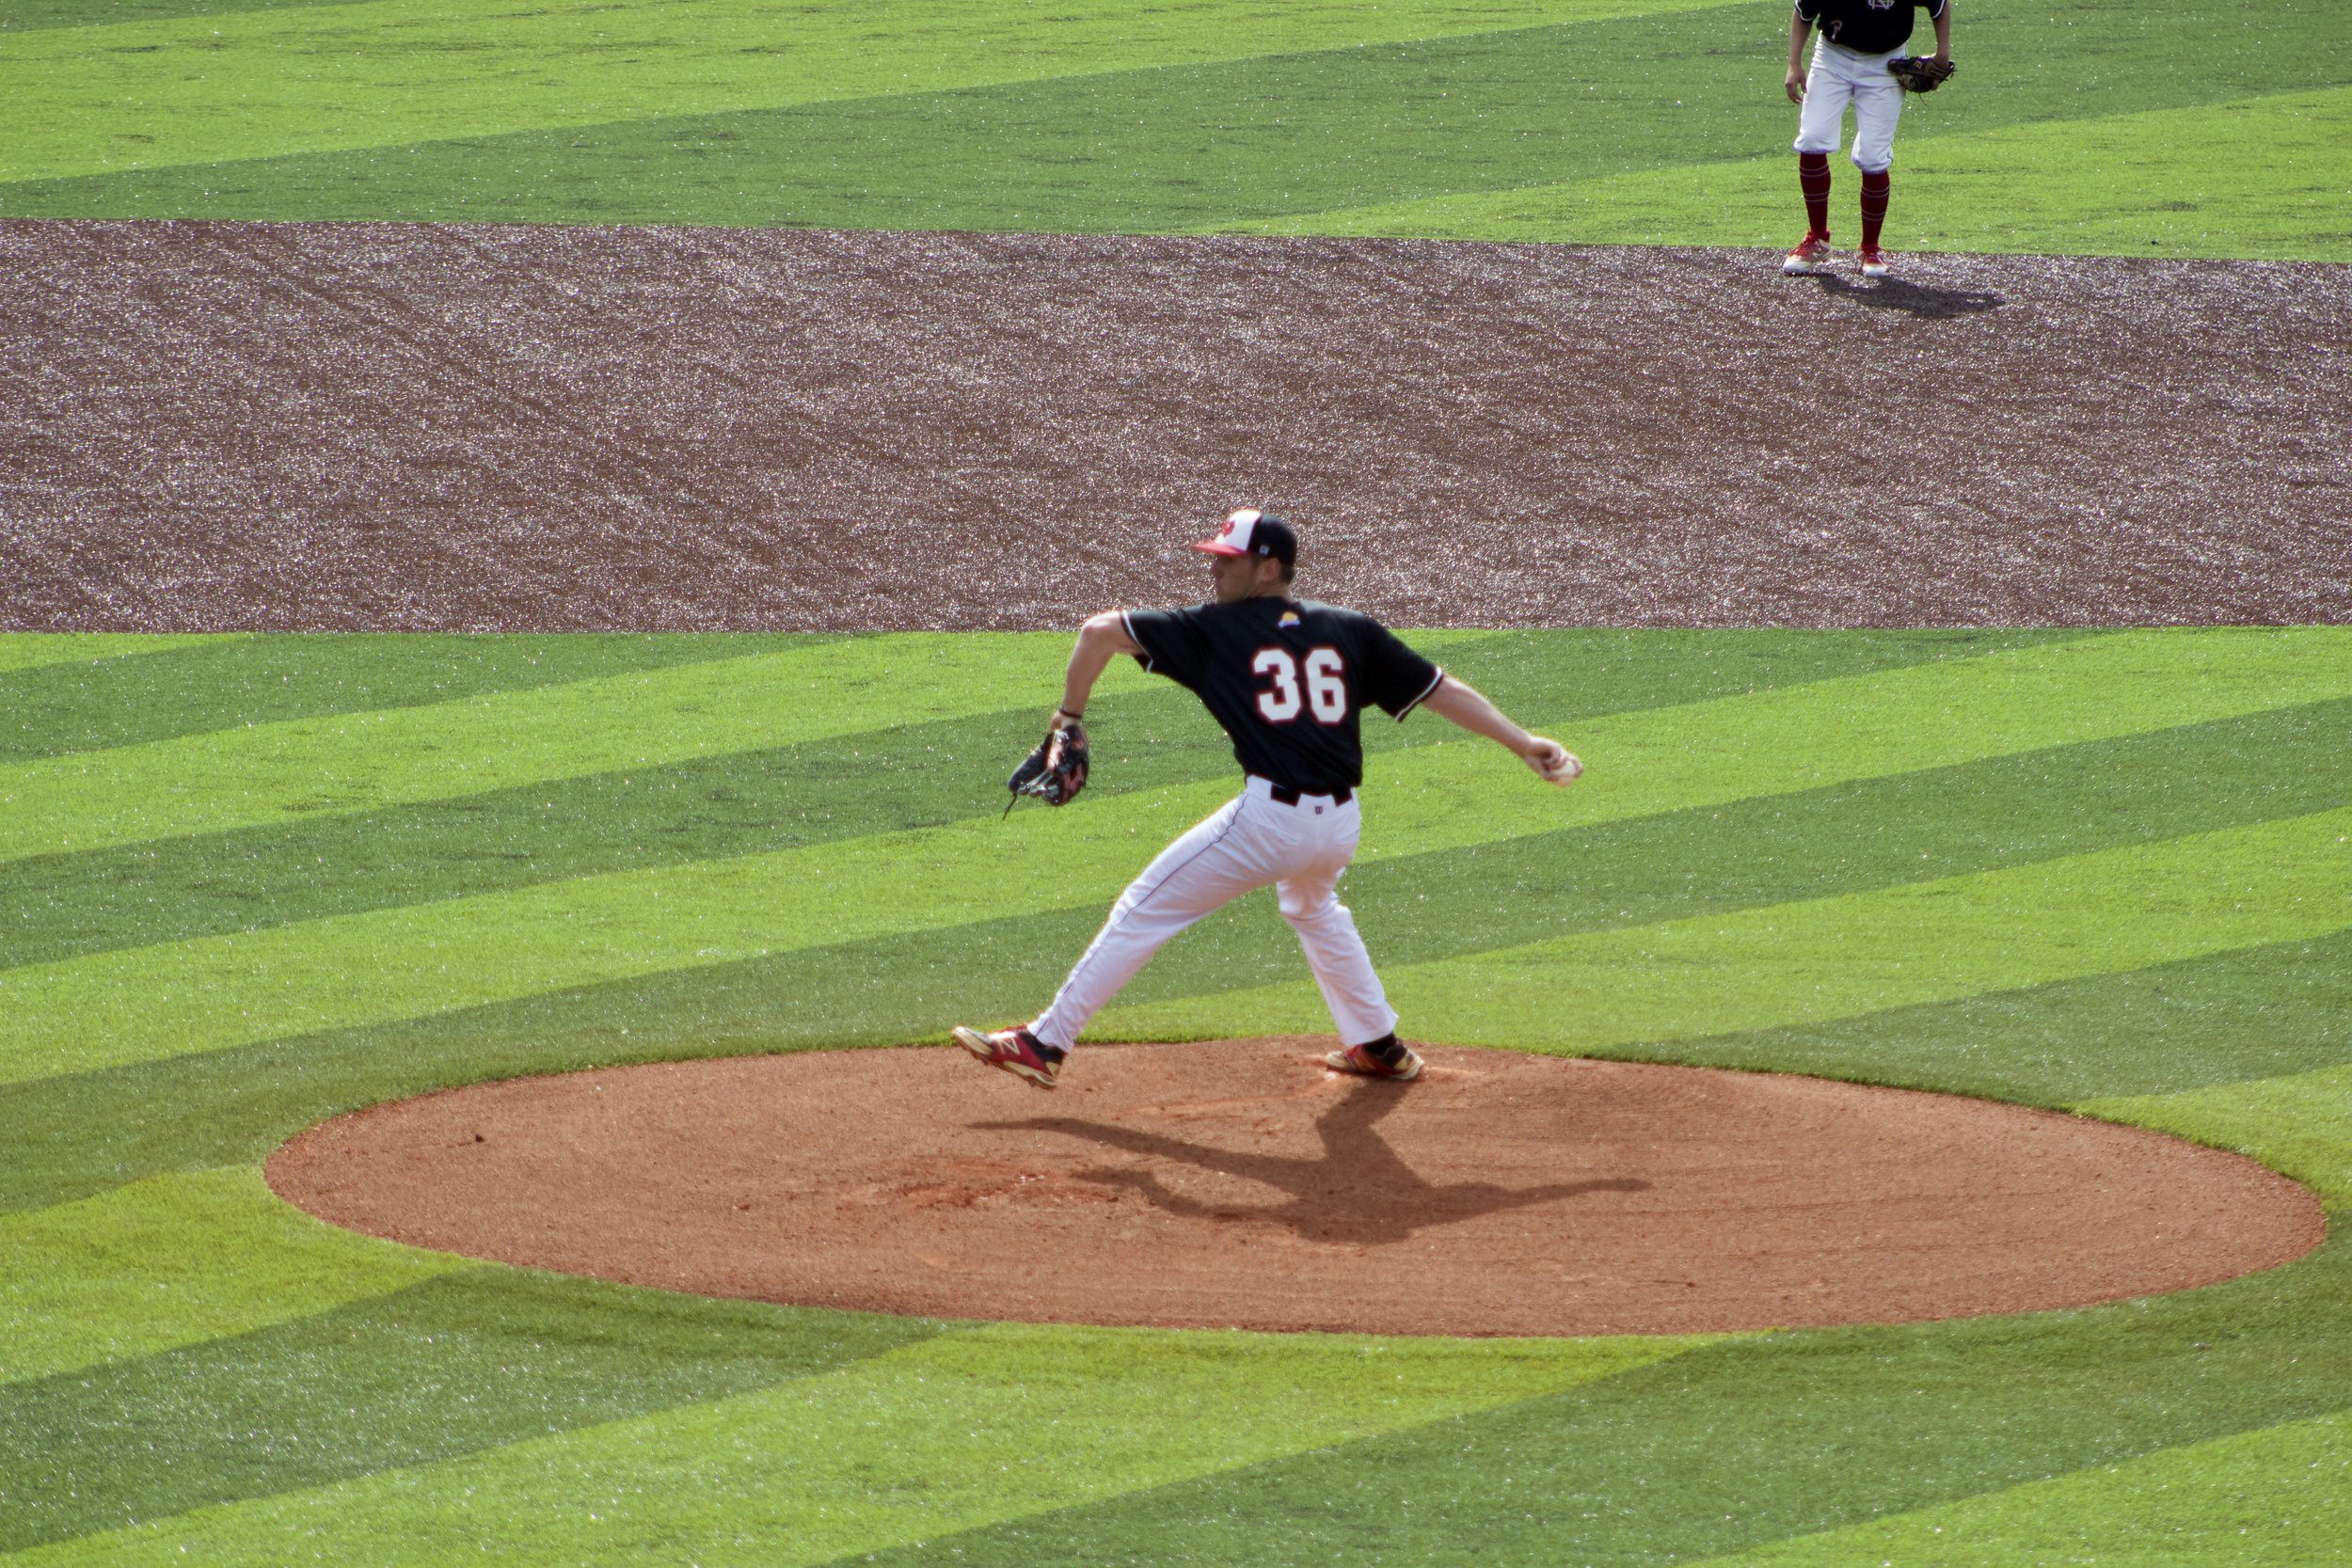 Trent Spikes getting ready to pitch.